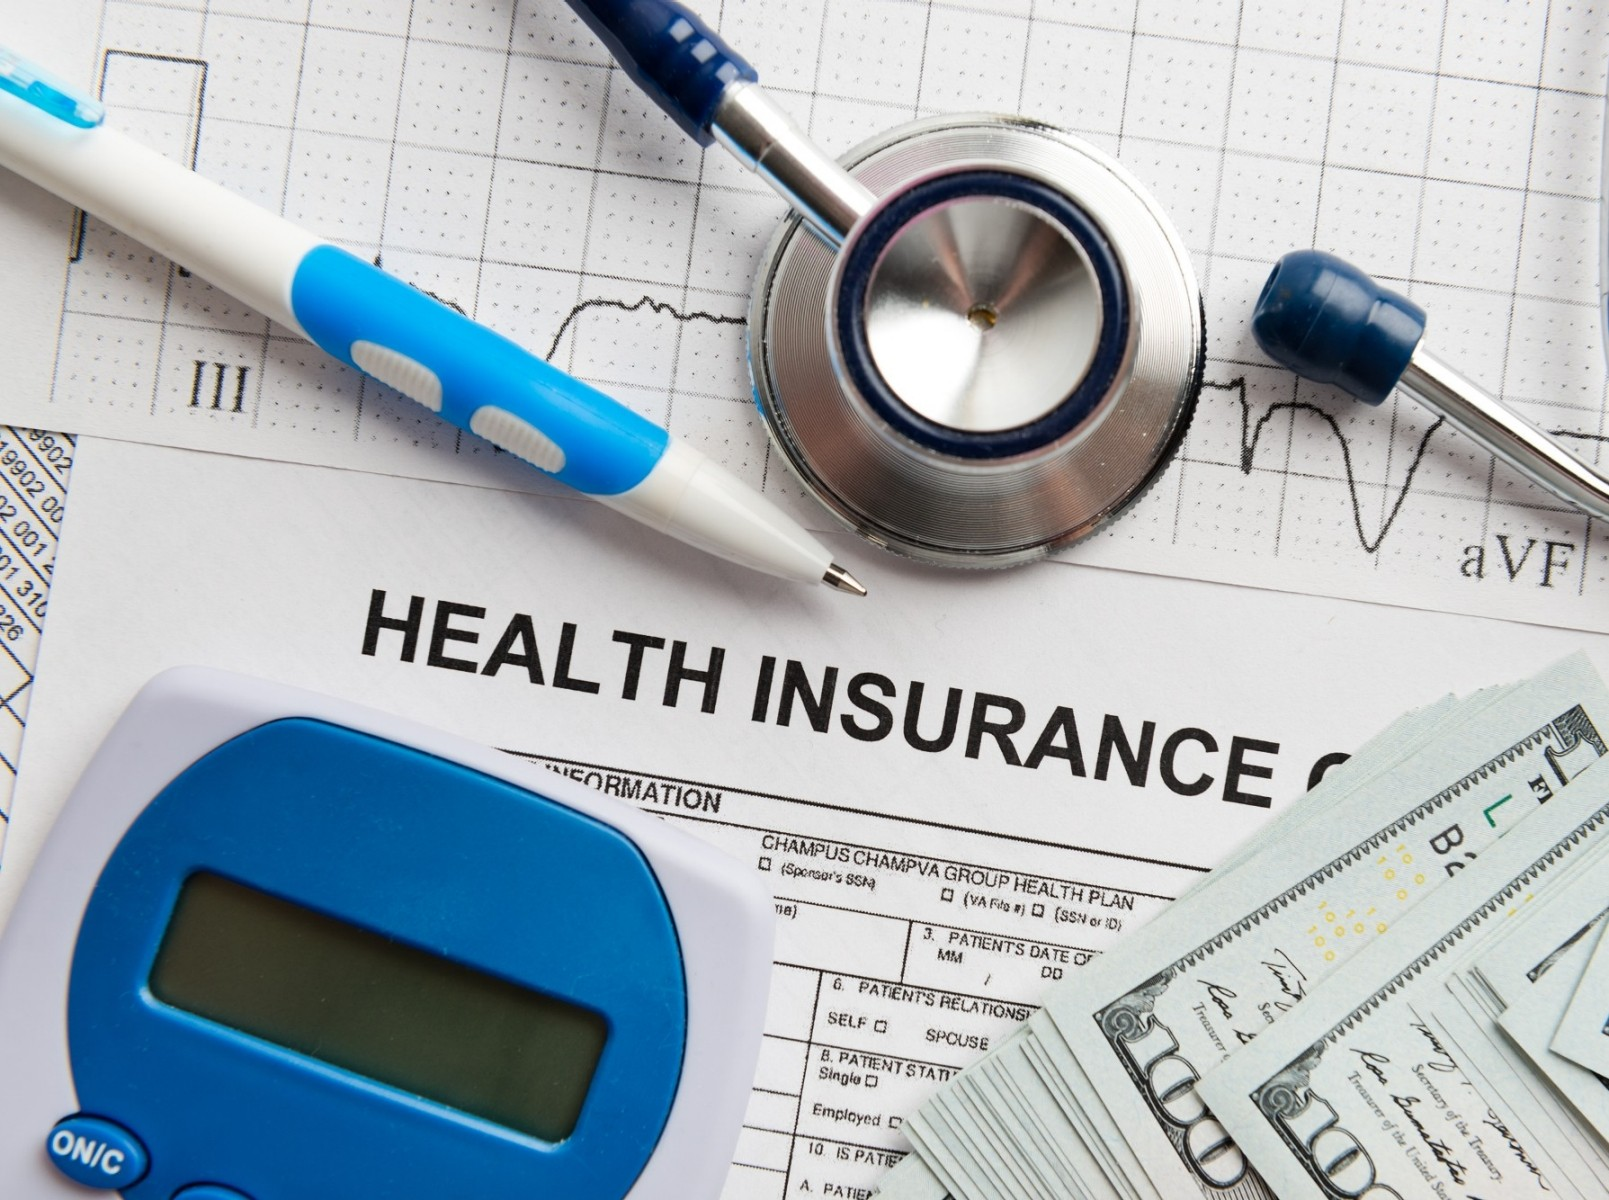 The Best Way To Best Protect Yourself With Health Insurance